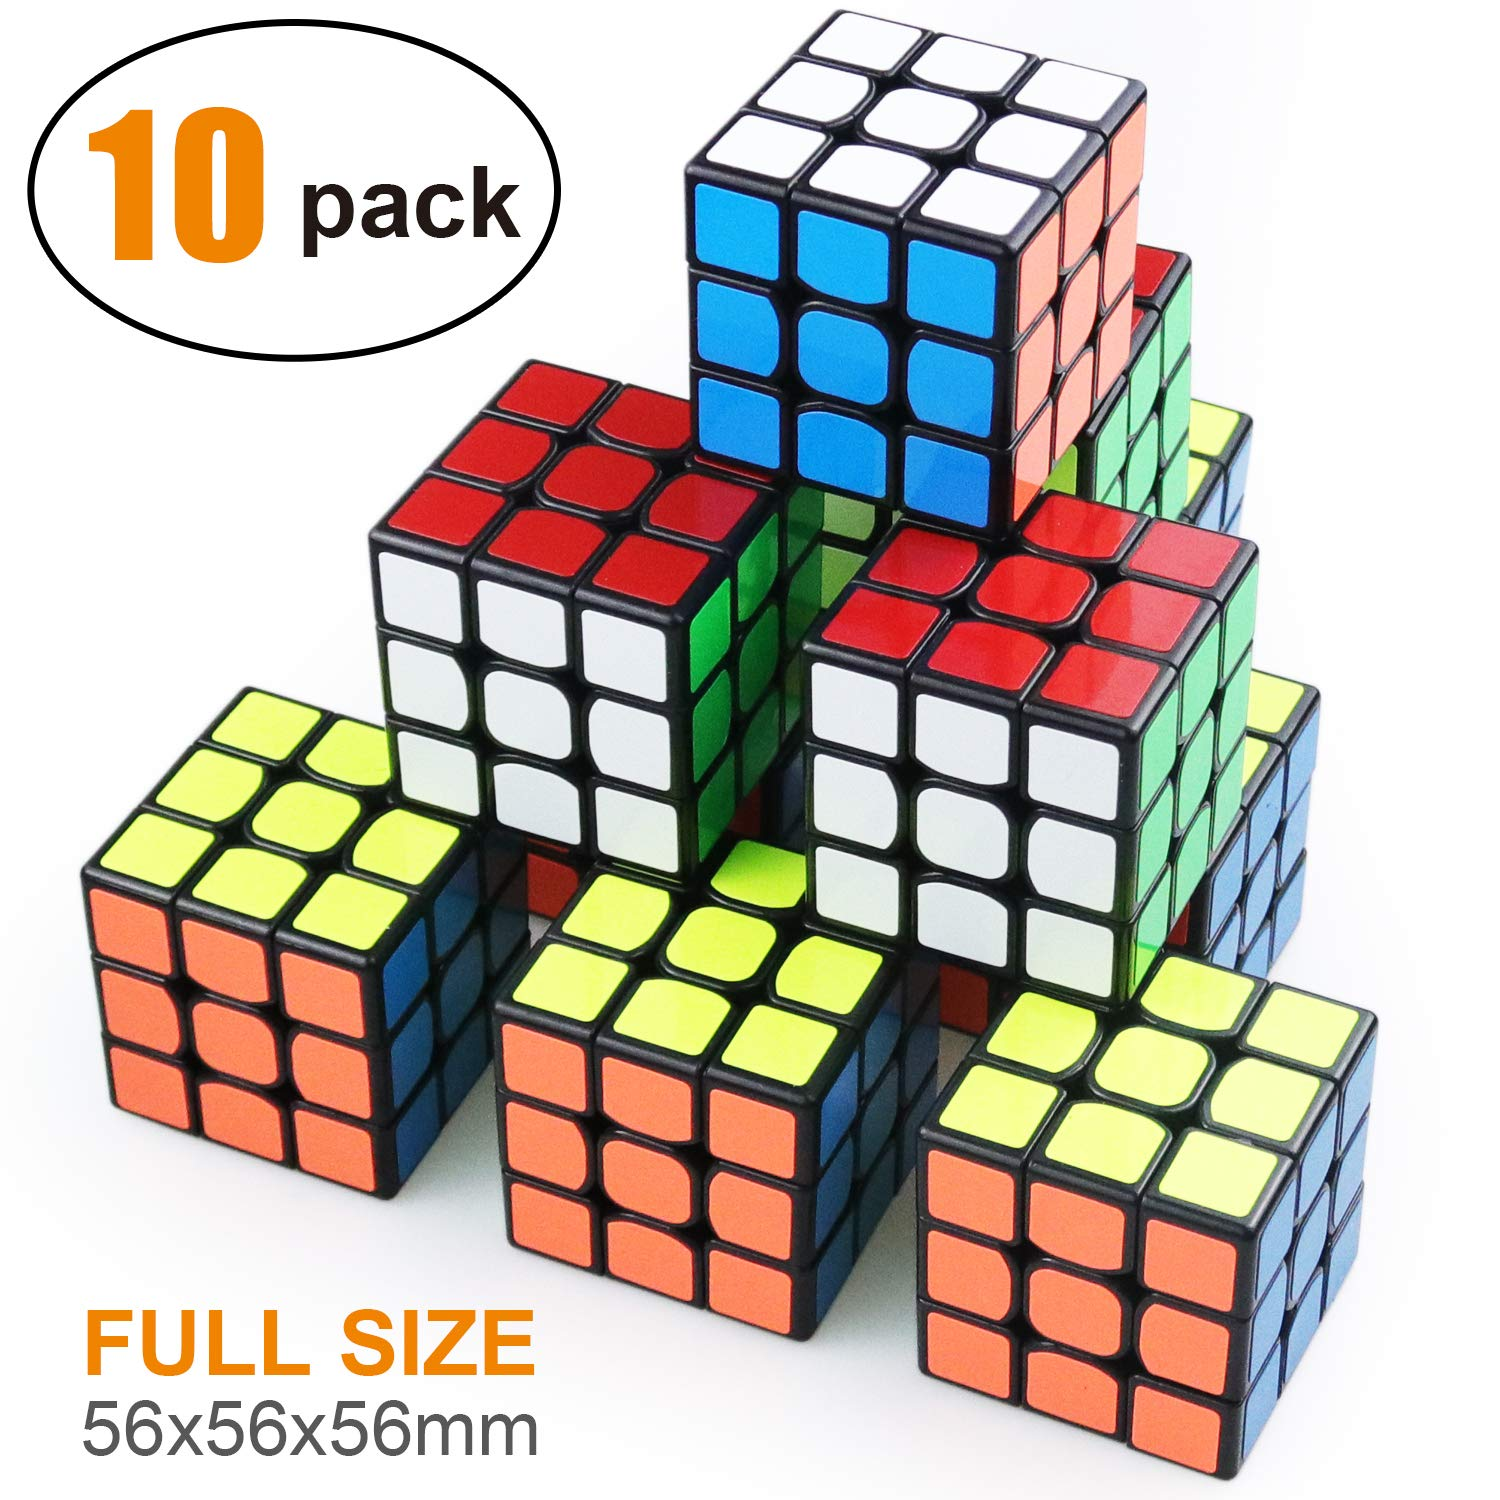 Full Size 3×3 Cube Set,Puzzle Party Toy, Eco-Friendly Material with Vivid Colors,Party Favor School Supplies Puzzle Game Set for Kids and Adults(10 Pack) by AROIC